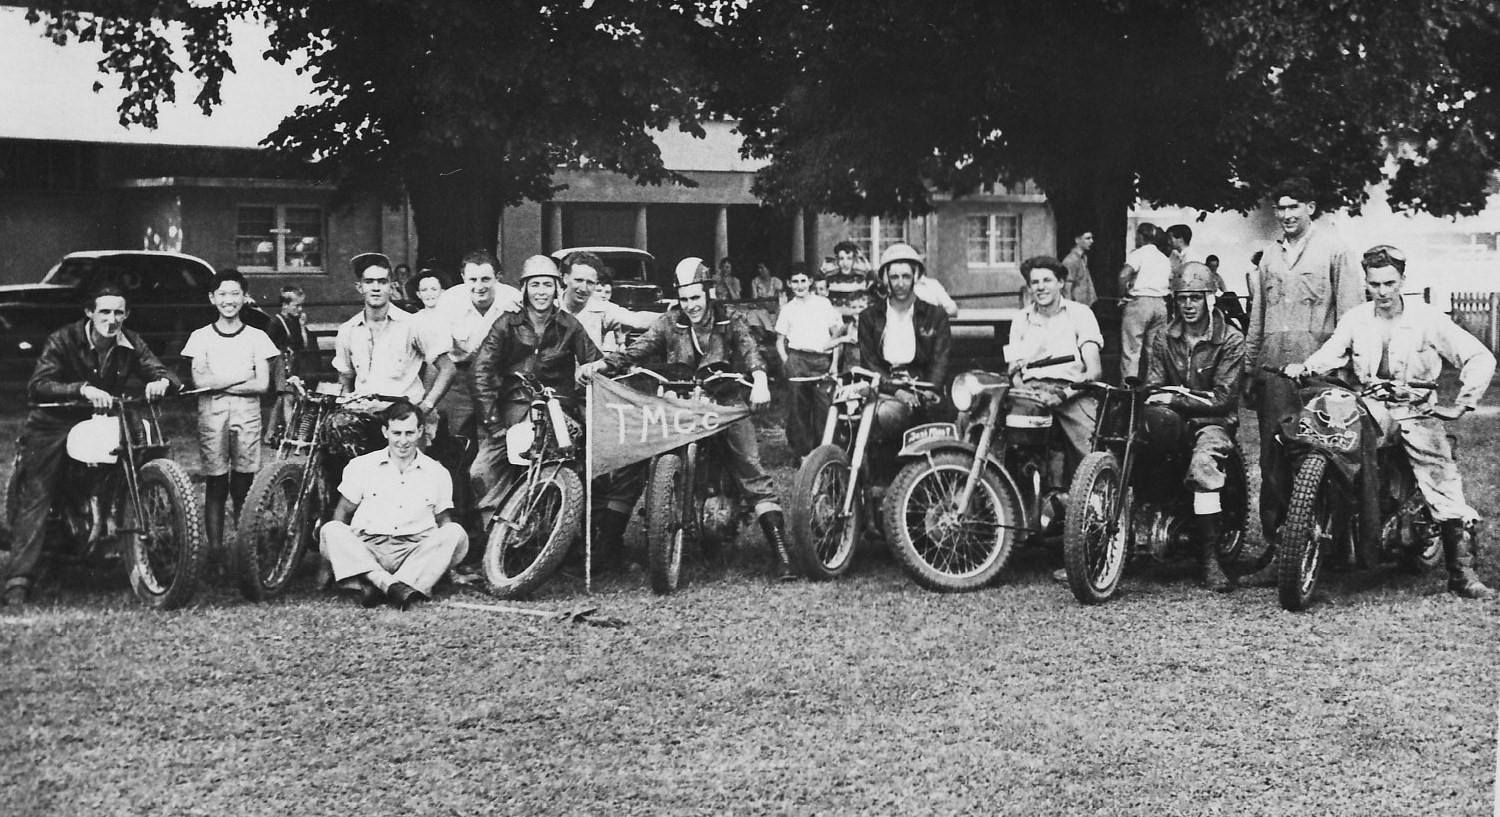 1953-tumut-motorcycleclub-leanneclout